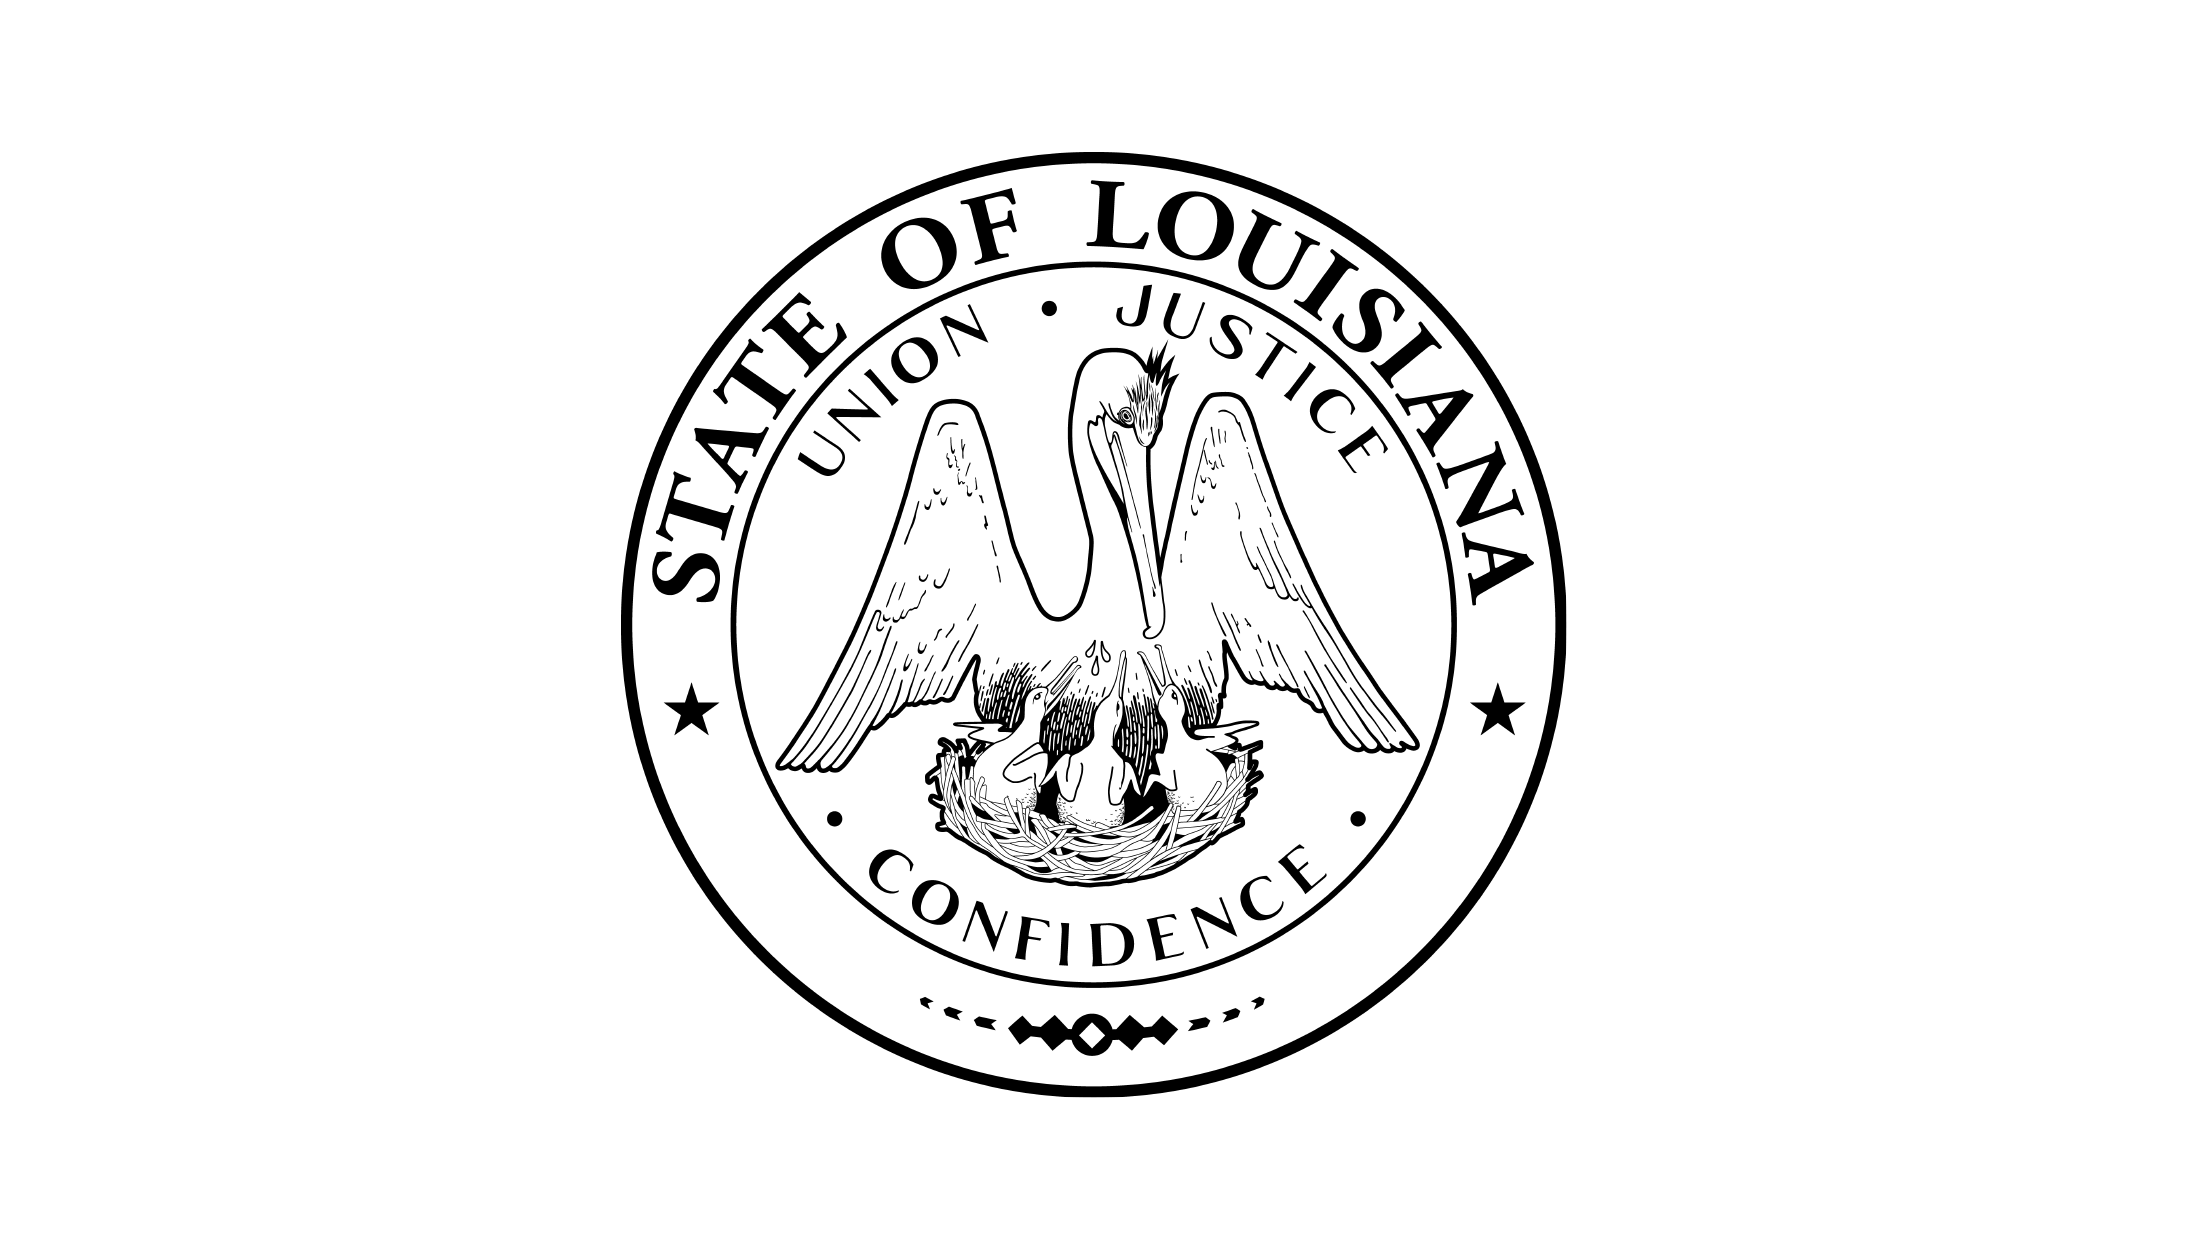 Sate of Louisiana